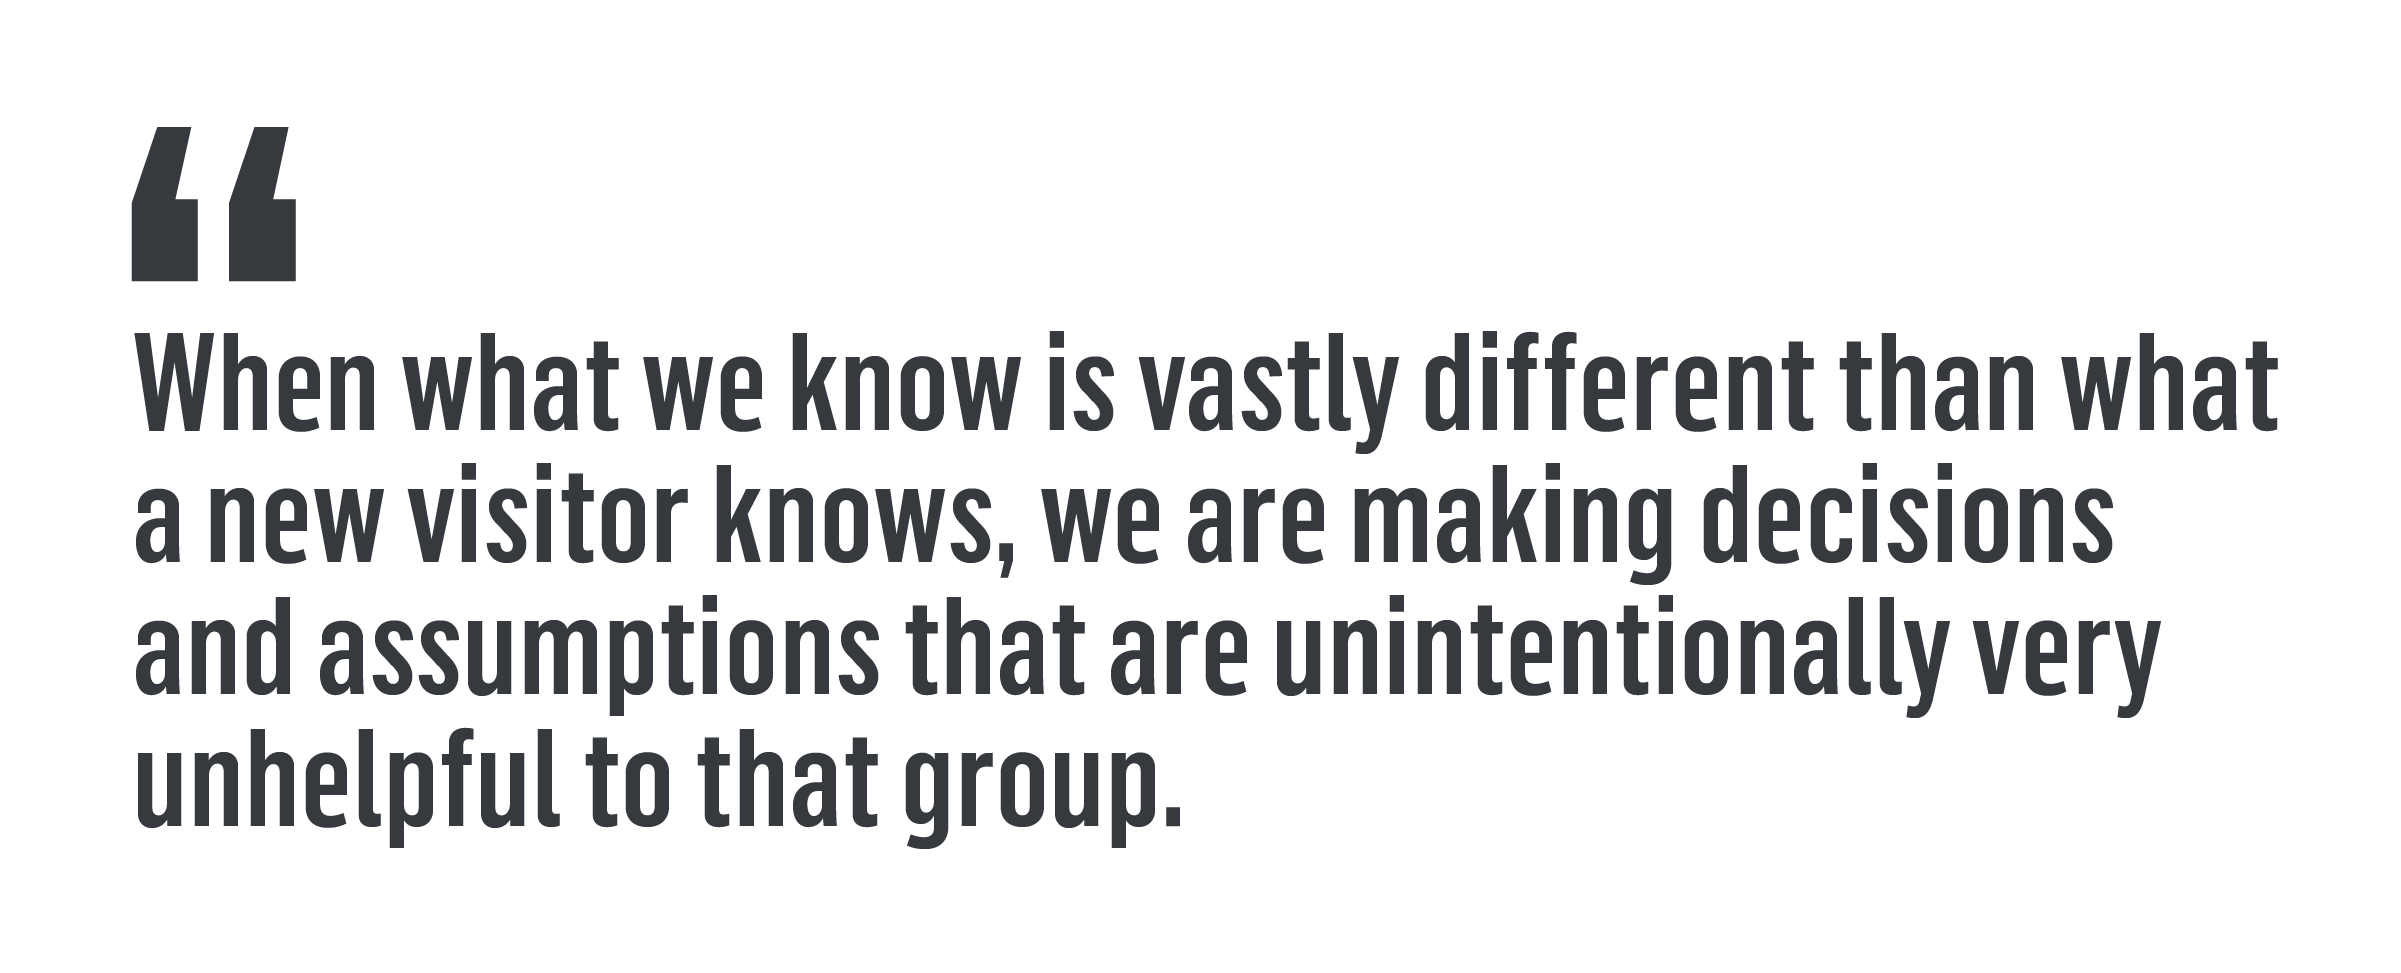 'When what we know is vastly different than what a new visitor knows, we are making decisions and assumptions that are unintentionally very unhelpful to that group.'